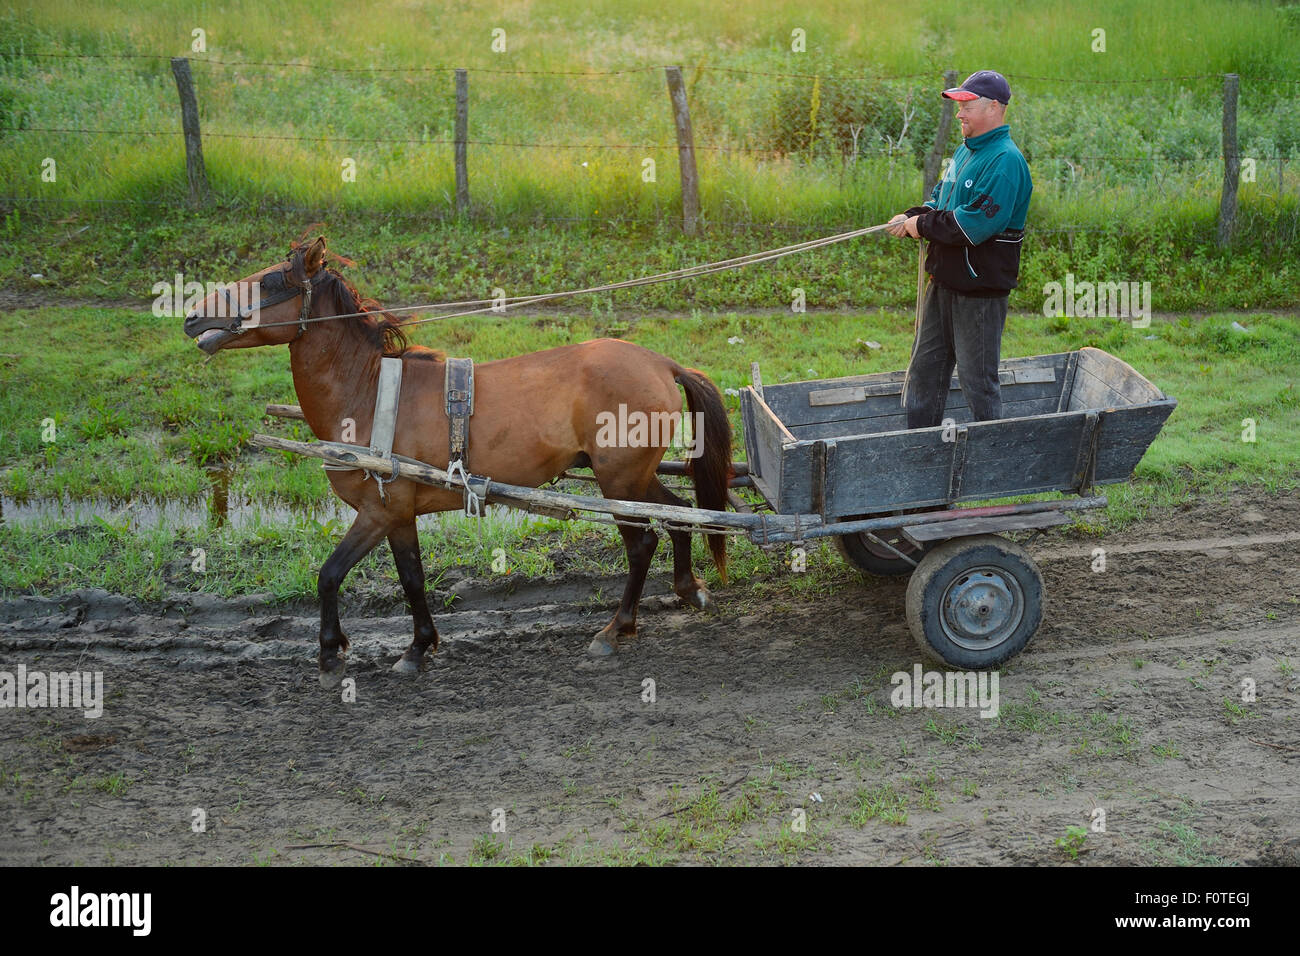 Traditional means of transport, horse and cart, Danube delta rewilding area, Romania May 2012 - Stock Image